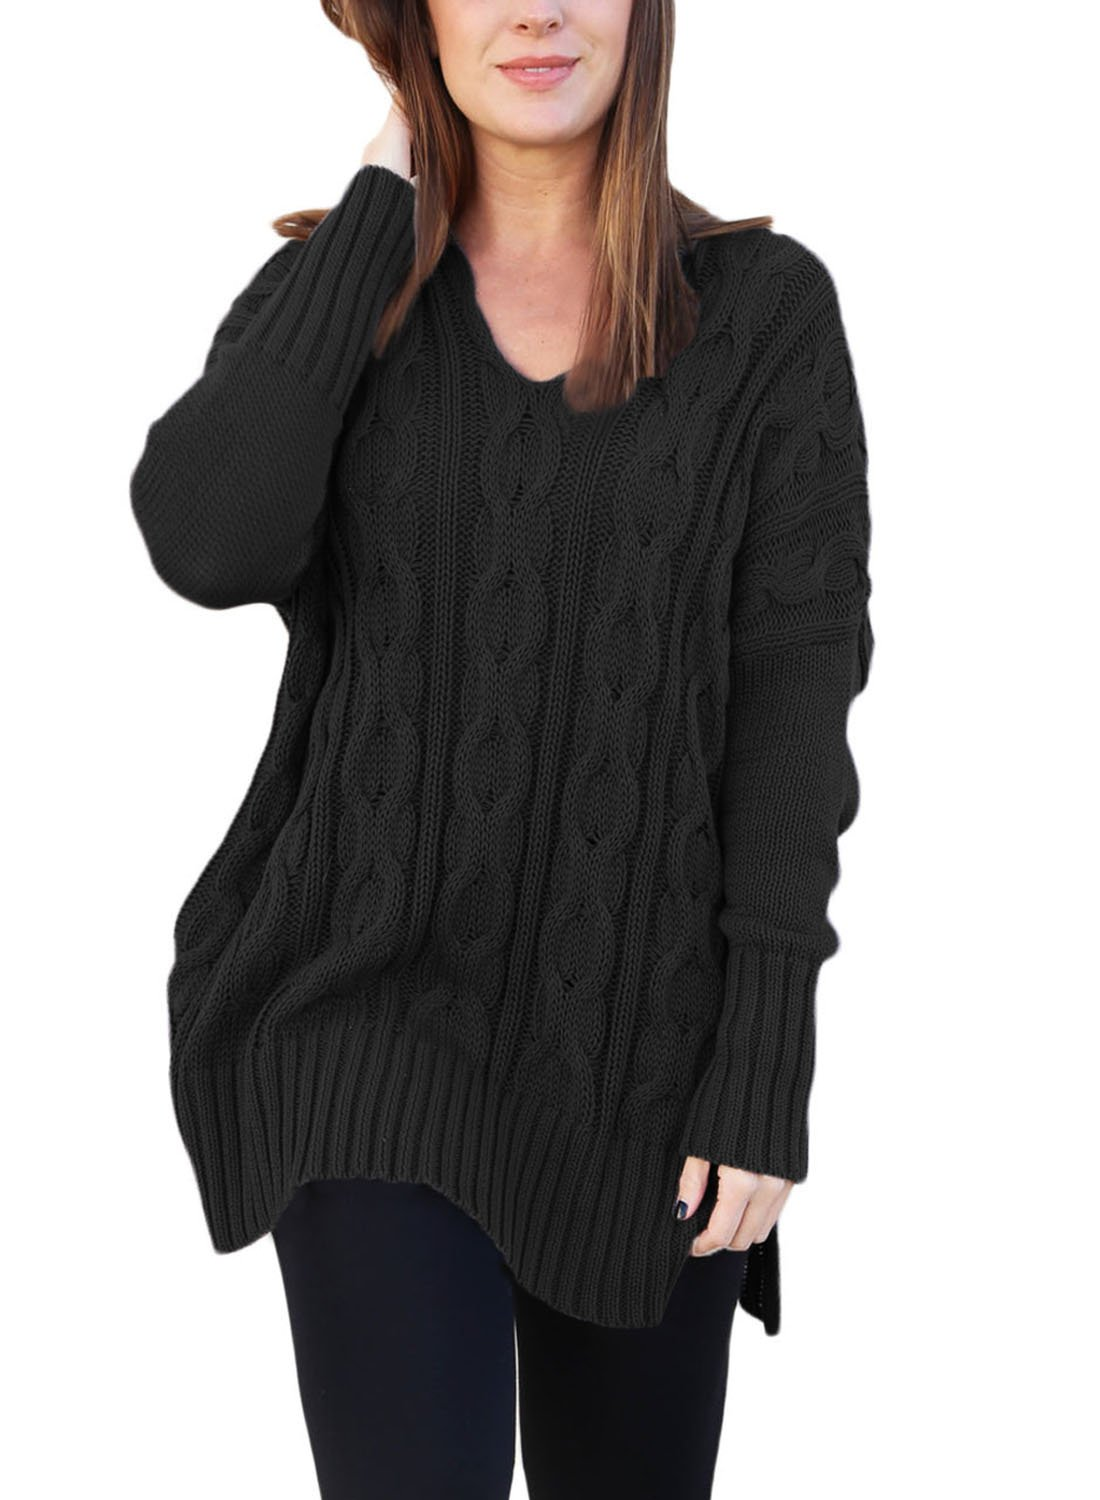 Sidefeel Women Casual V Neck Loose Fit Knit Sweater Pullover Top X-Large Black